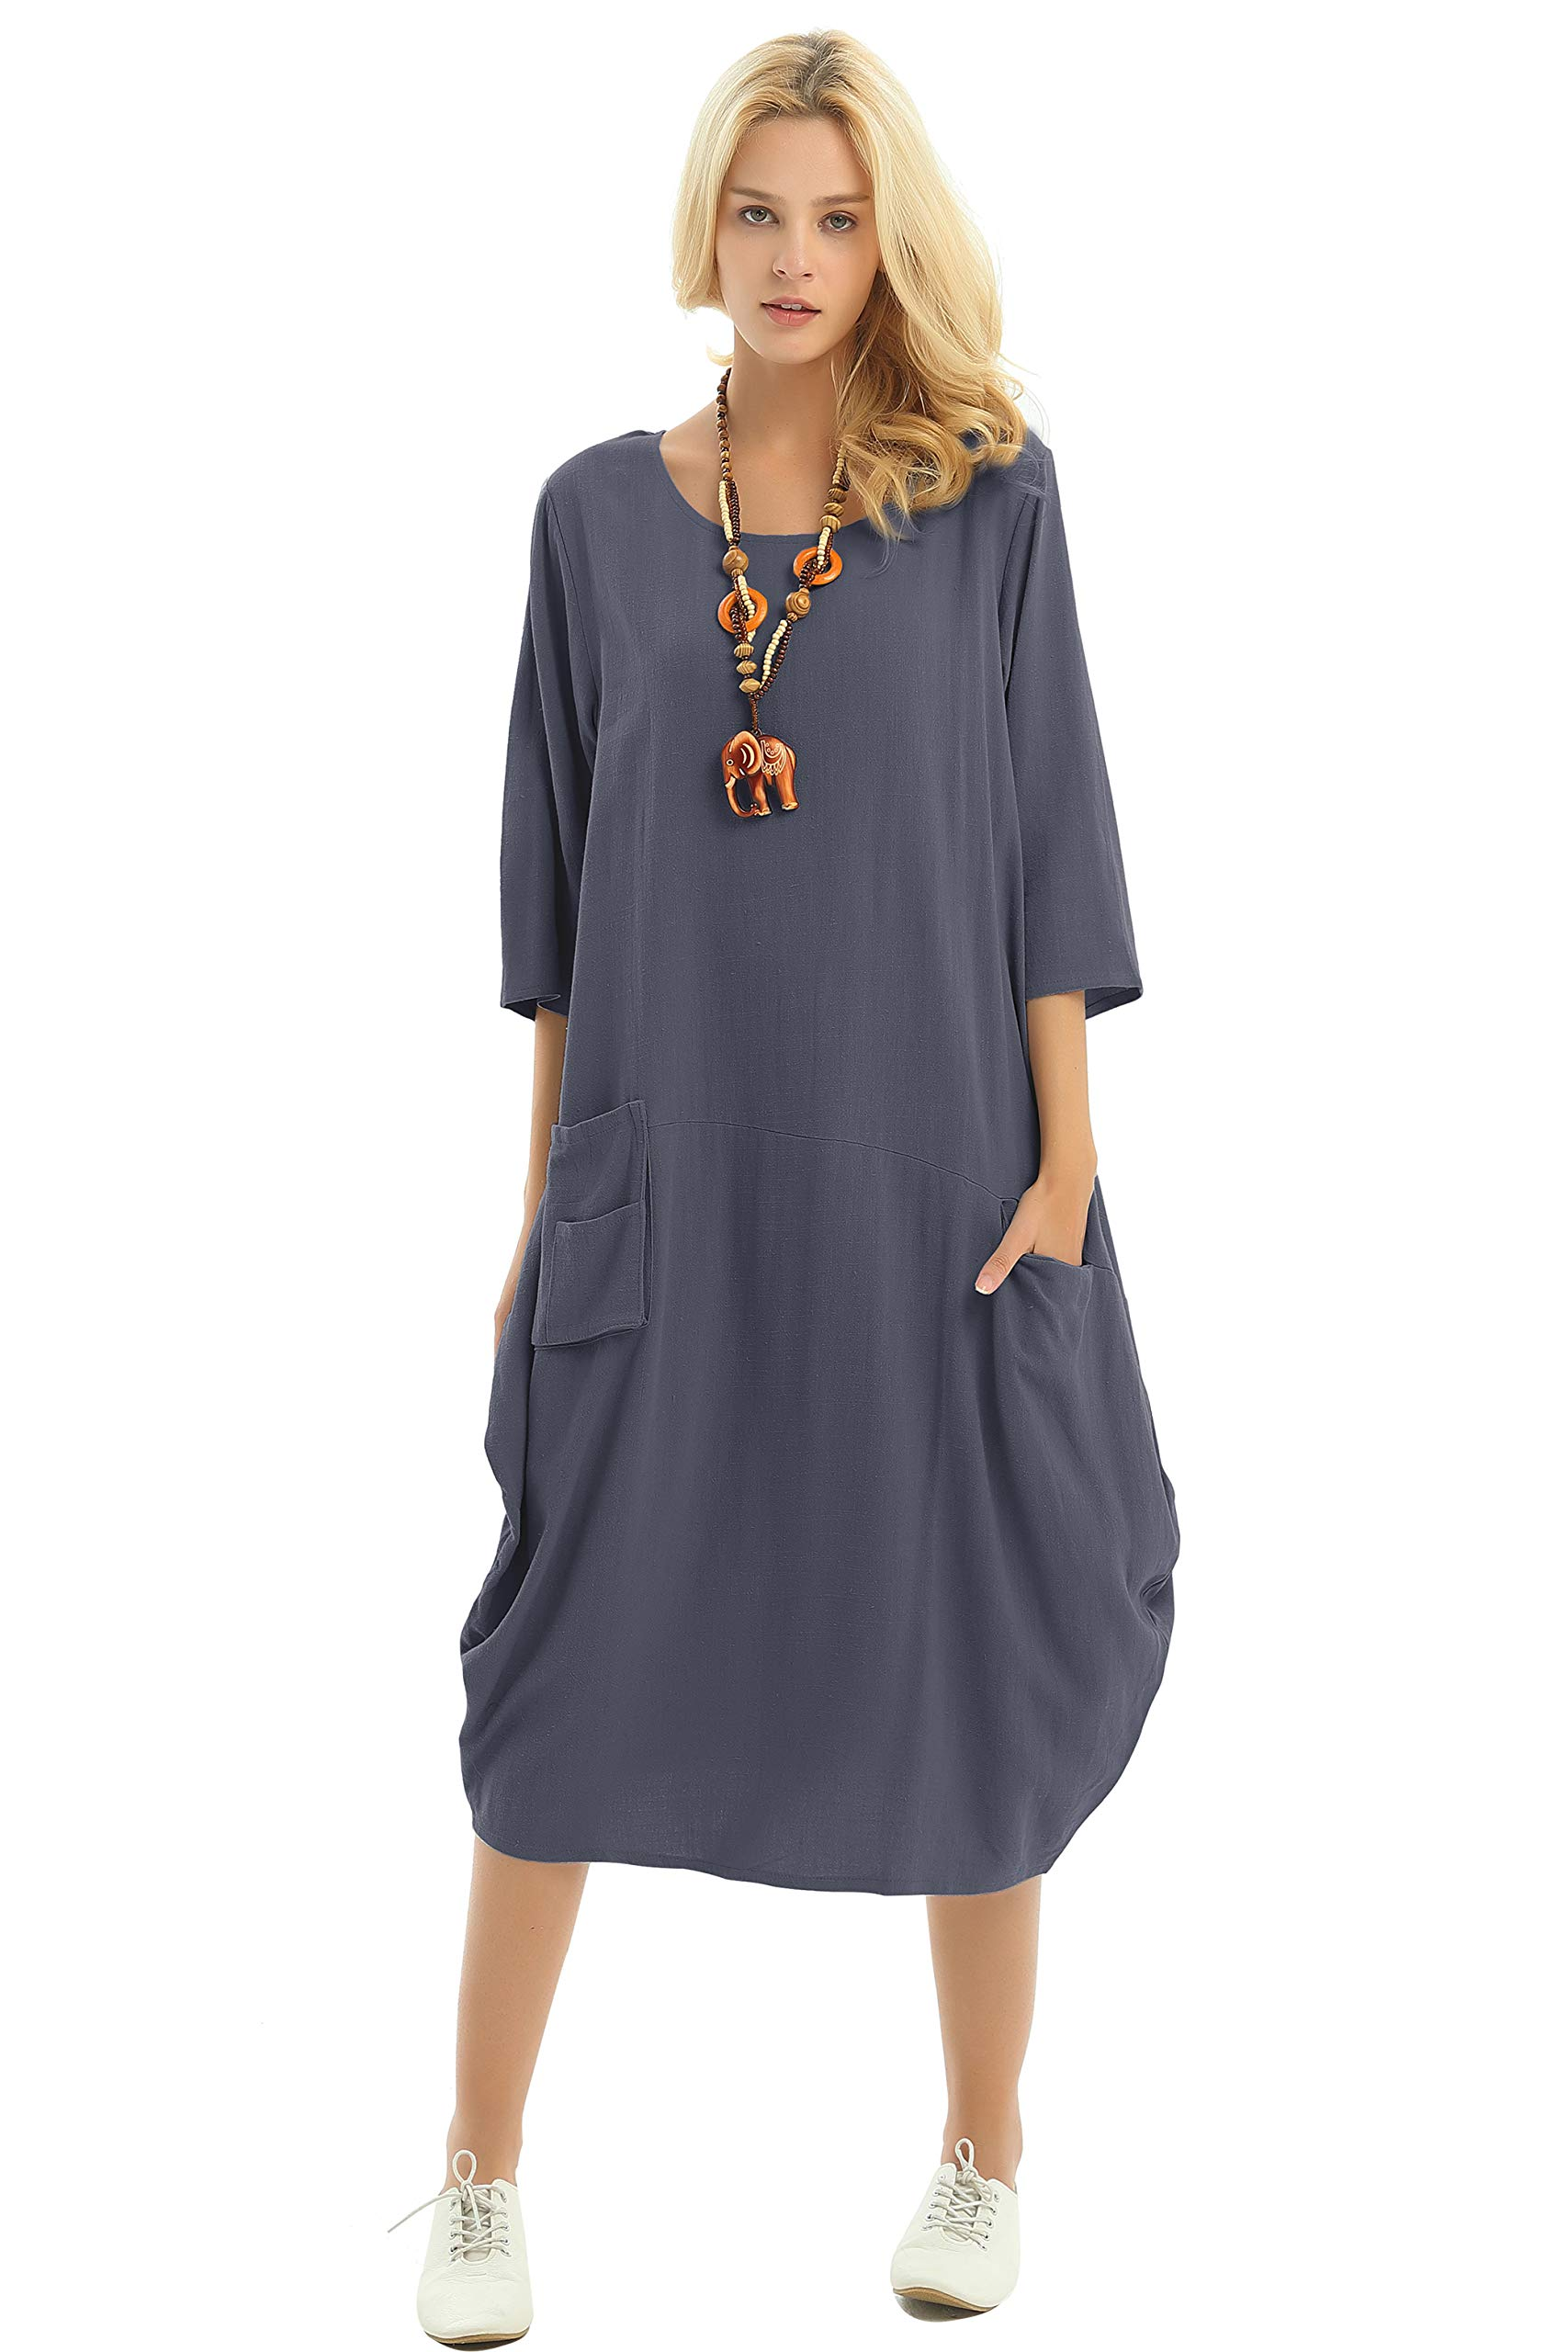 75e1d130e1 Anysize Soft Linen Cotton Lantern Loose Dress Spring Summer Fall Plus Size  Clothing Y19 Gray